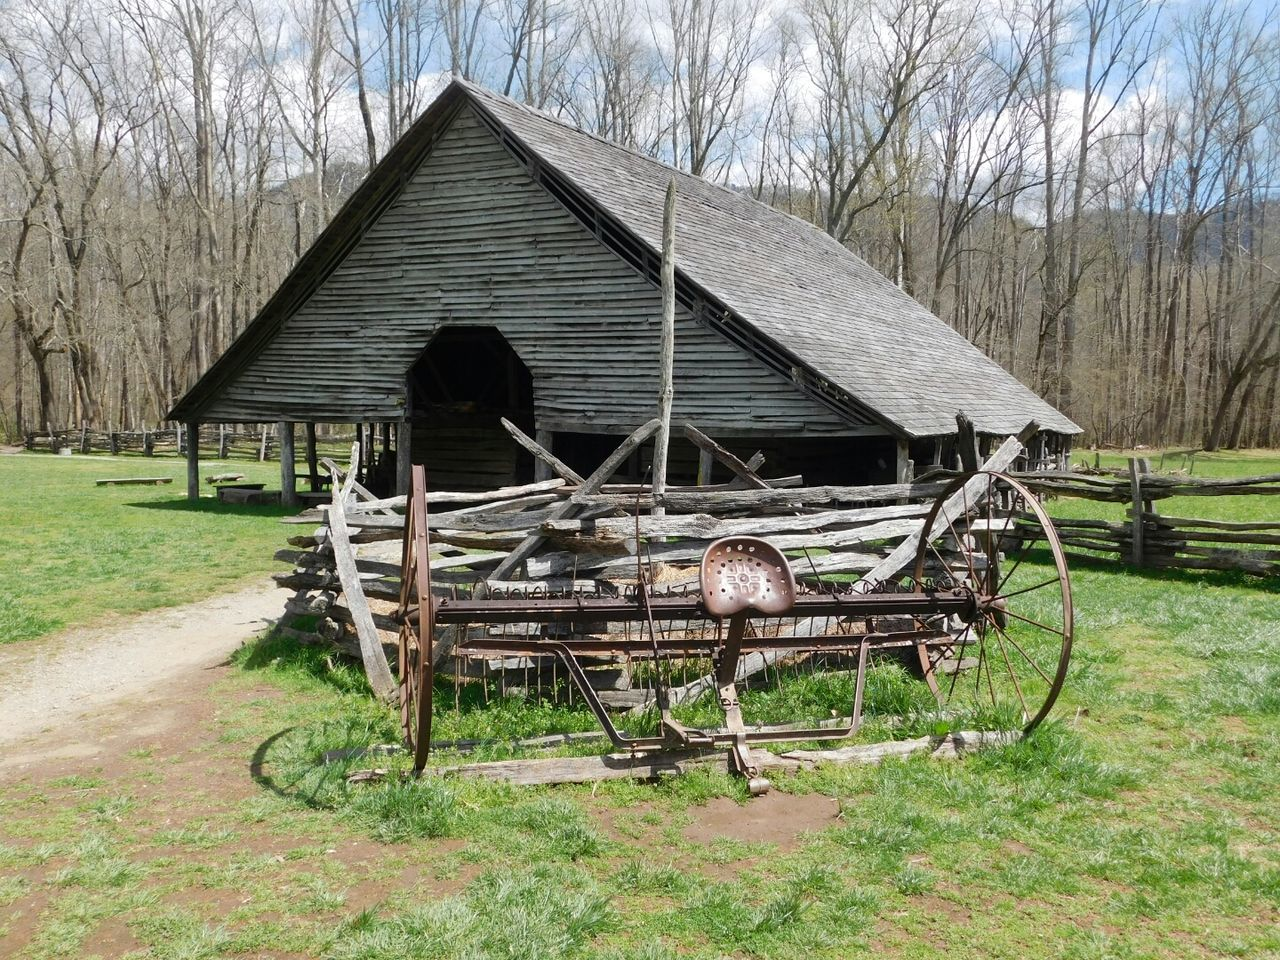 Built Structure Building Exterior Wood - Material Tree Architecture House No People Horse Cart Sky Nature Wagon Wheel Day Agriculture Outdoors Great Smokey Mountain National Park Scenics Landscape Barn No Filter, No Edit, Just Photography